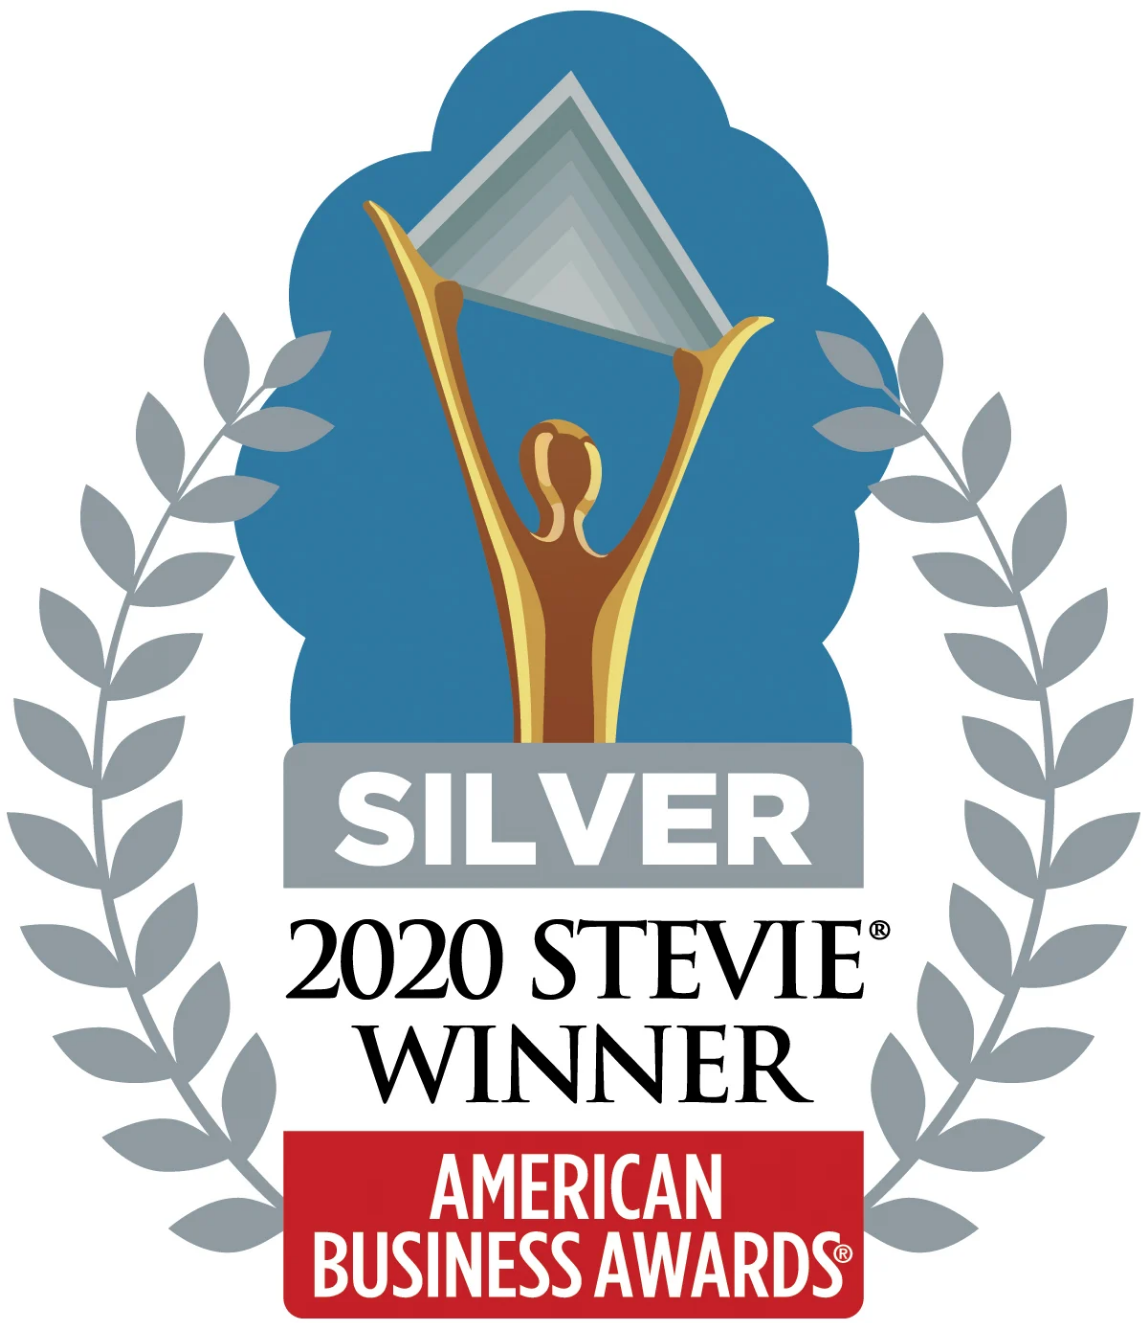 2020 Silver Stevie Award for American Business Awards